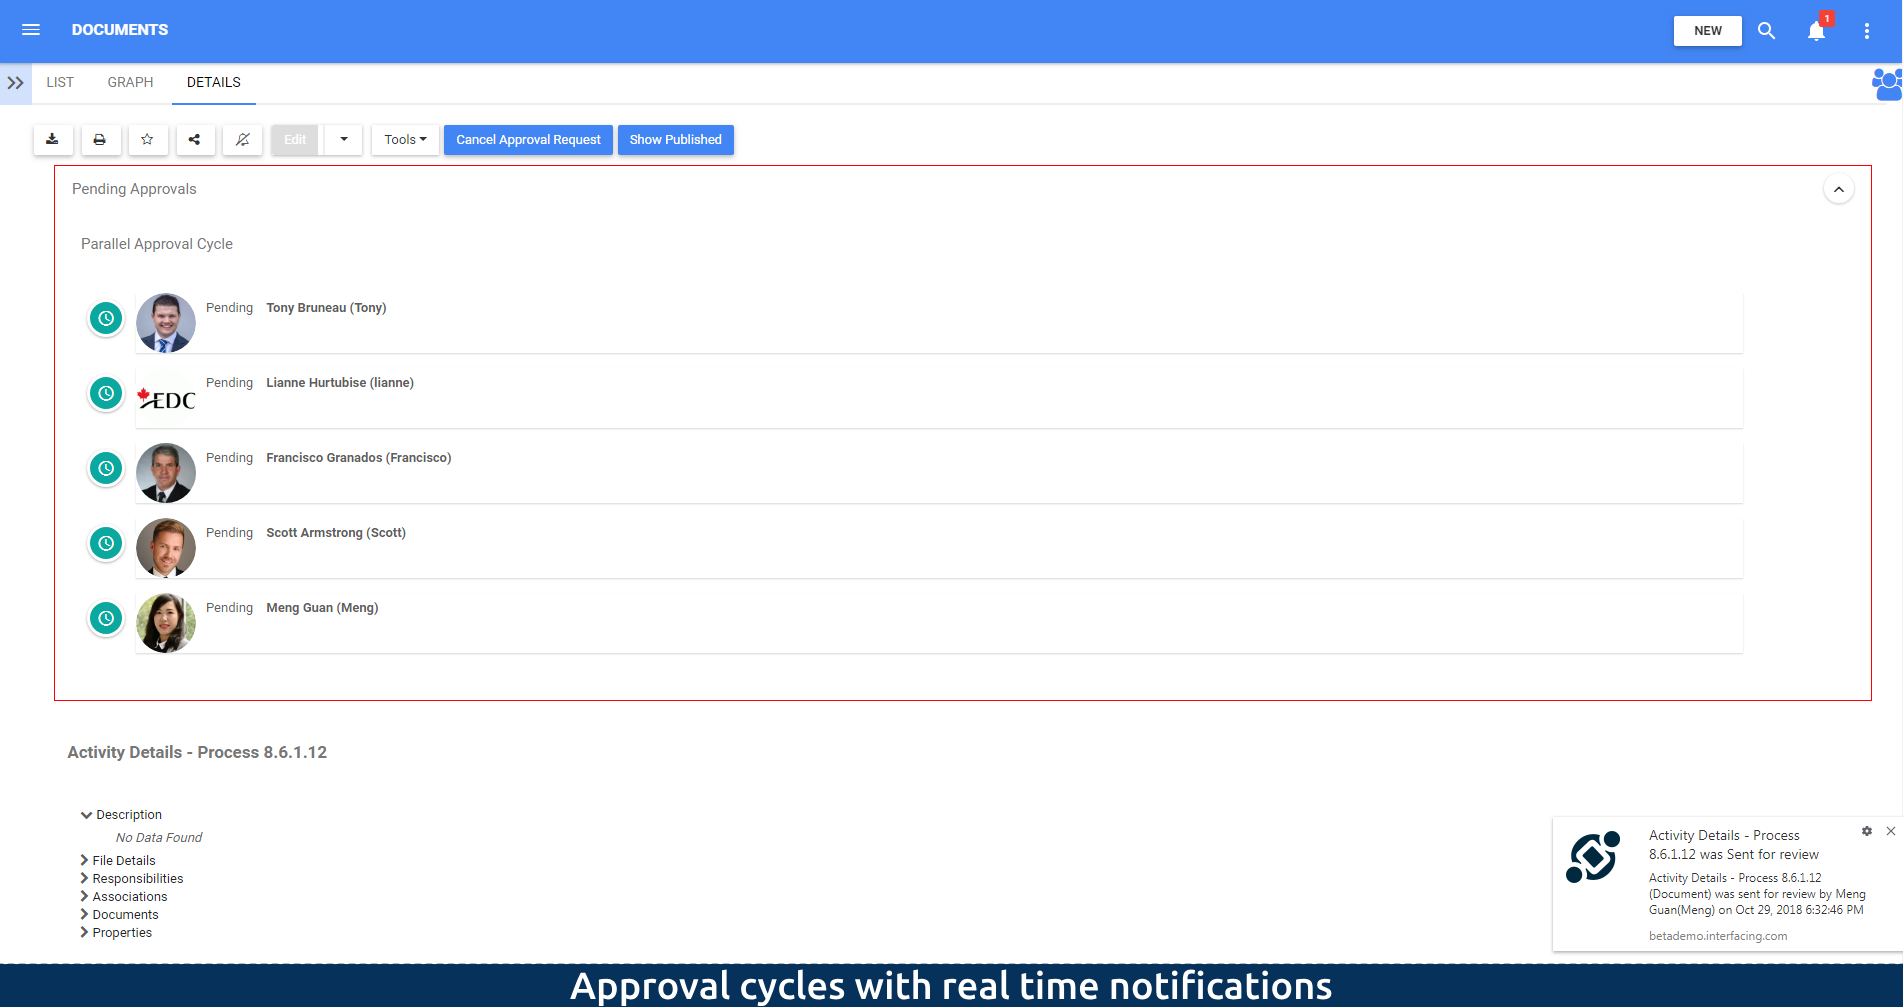 Approval cycles with notifications